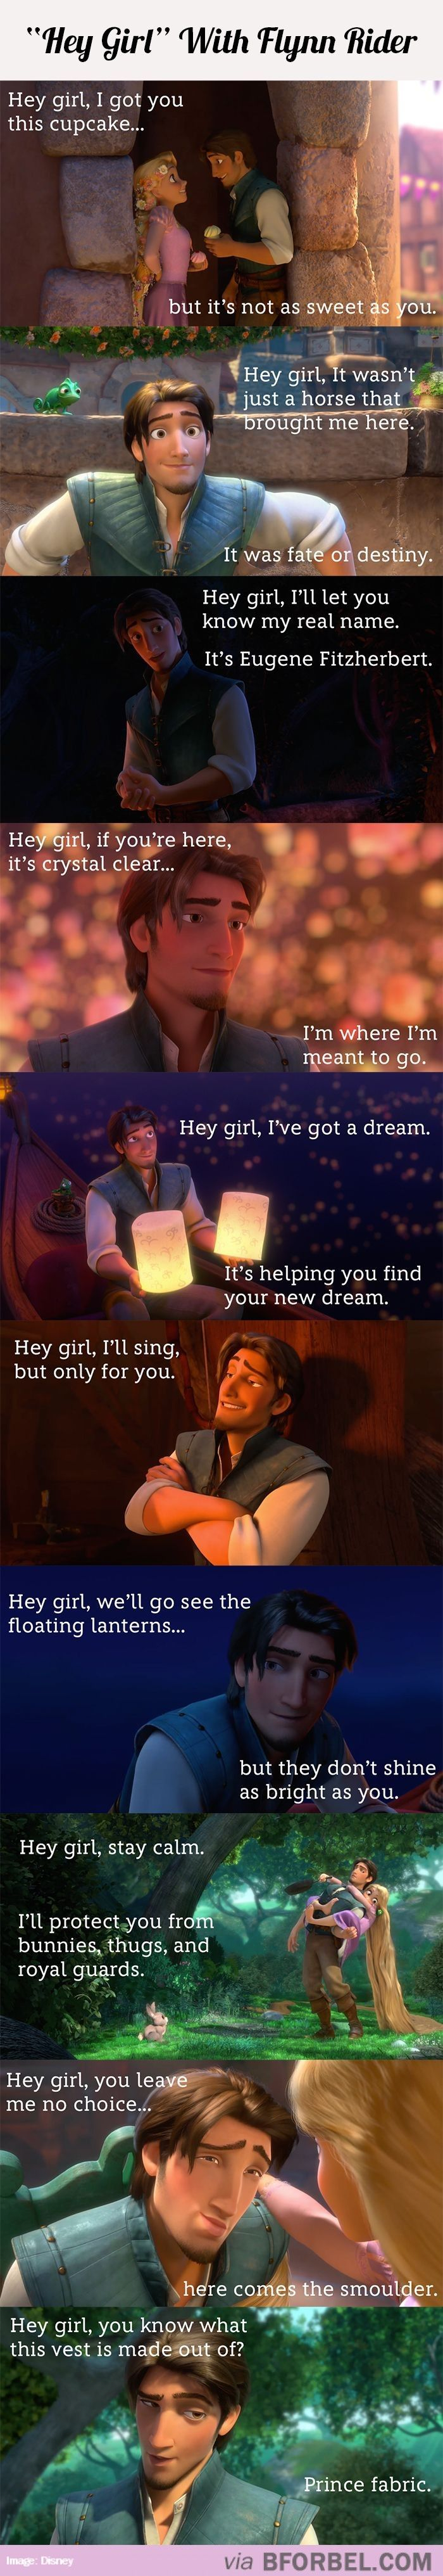 Oh my gosh... Flynn Rider pick up lines. They just had to go there. *shakes head*